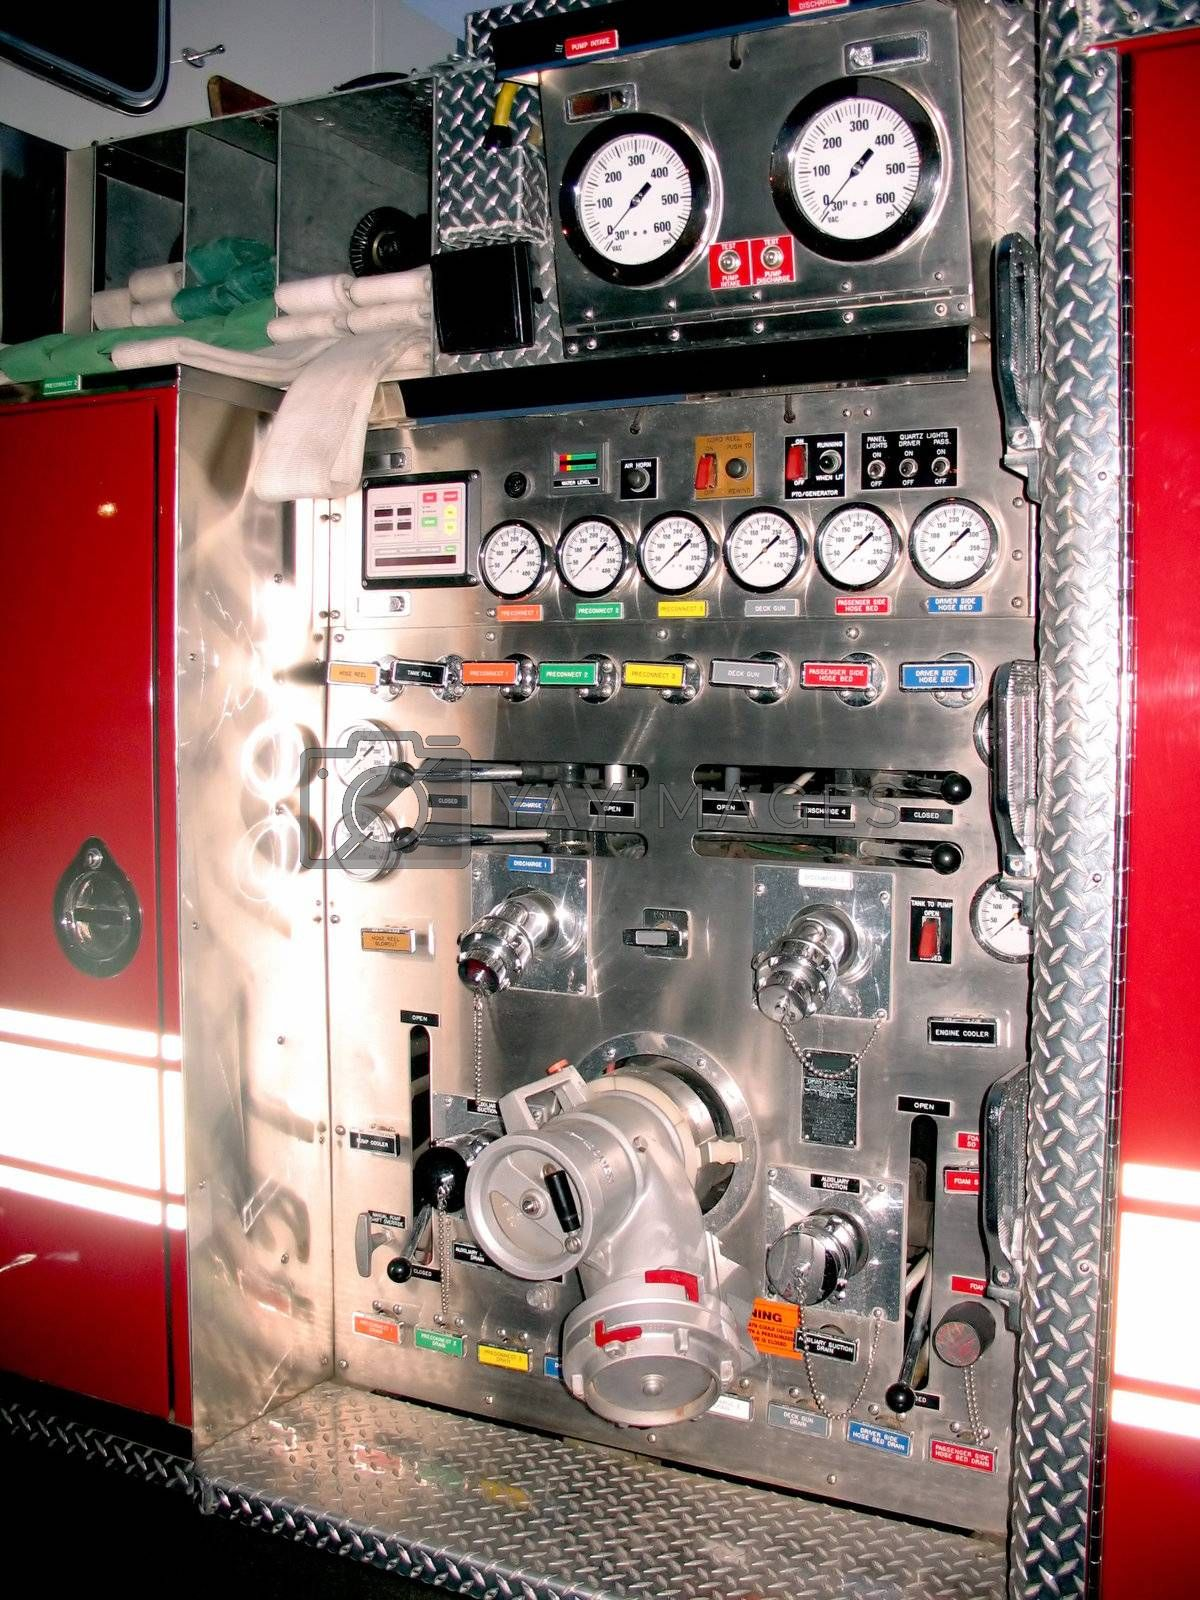 The side control panel of a modern fire engine.